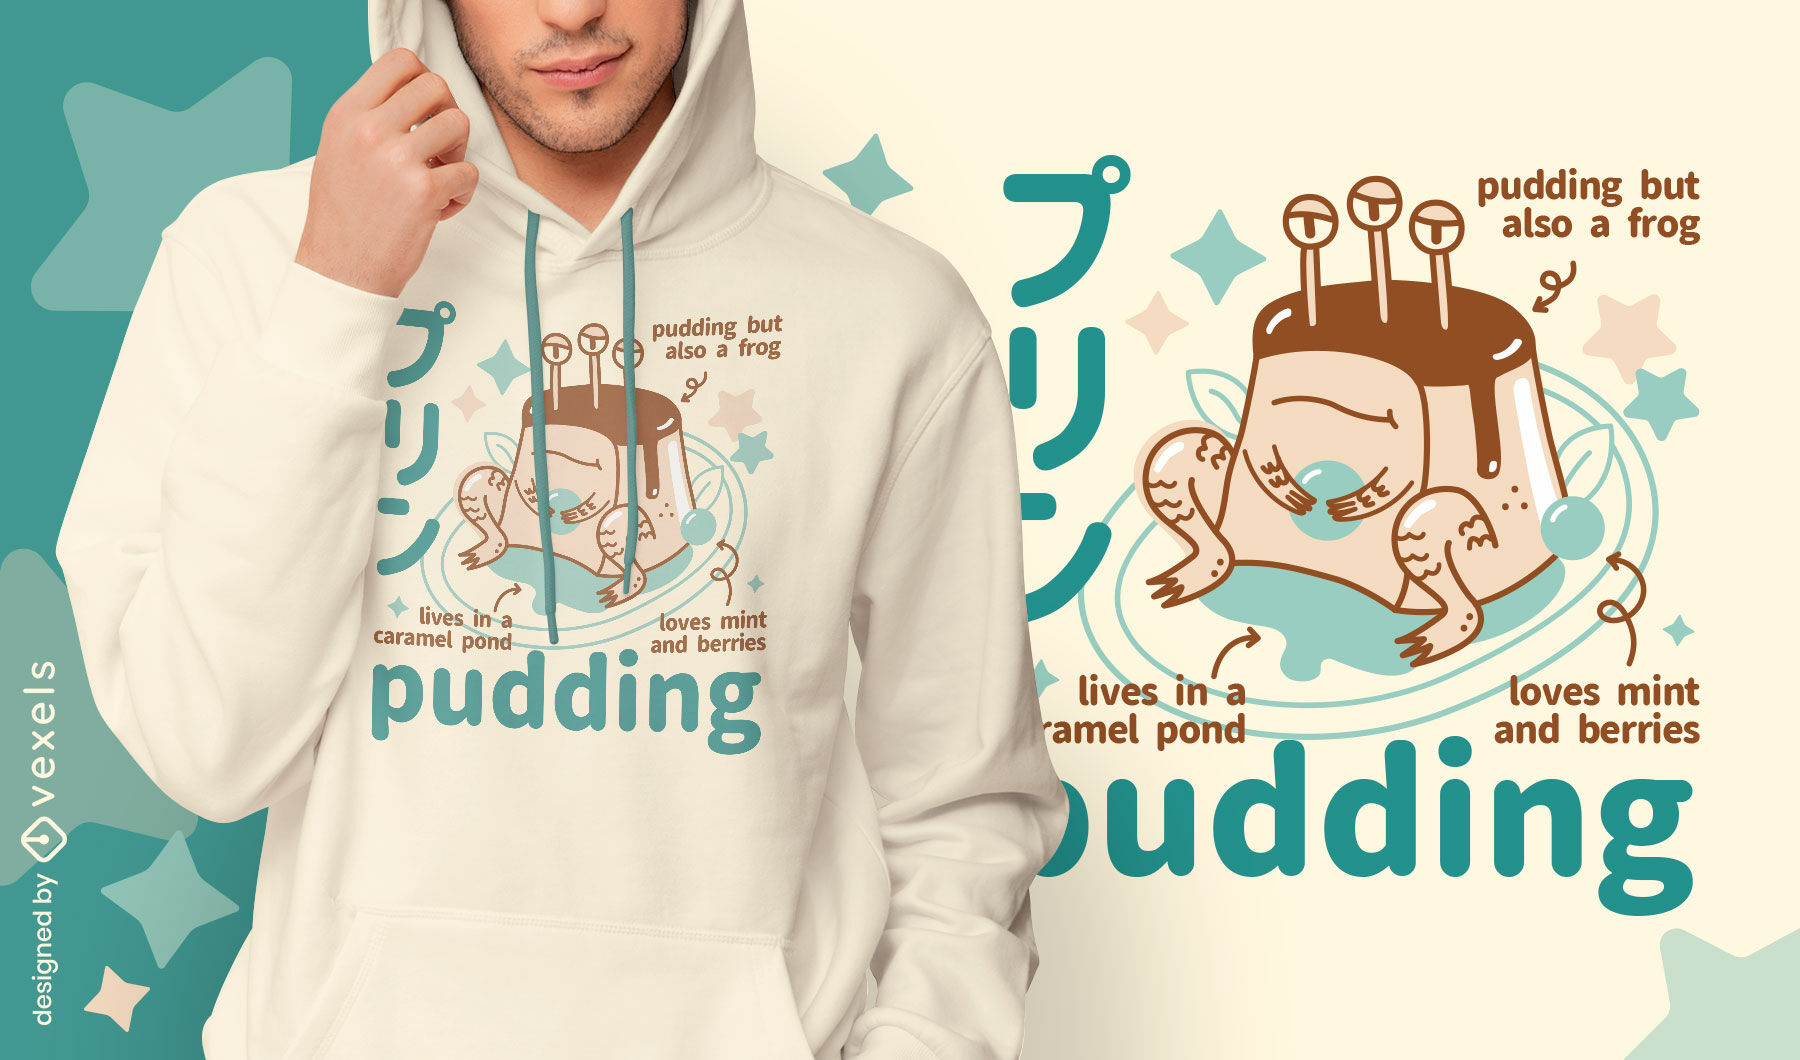 Awesome pudding monster t-shirt design